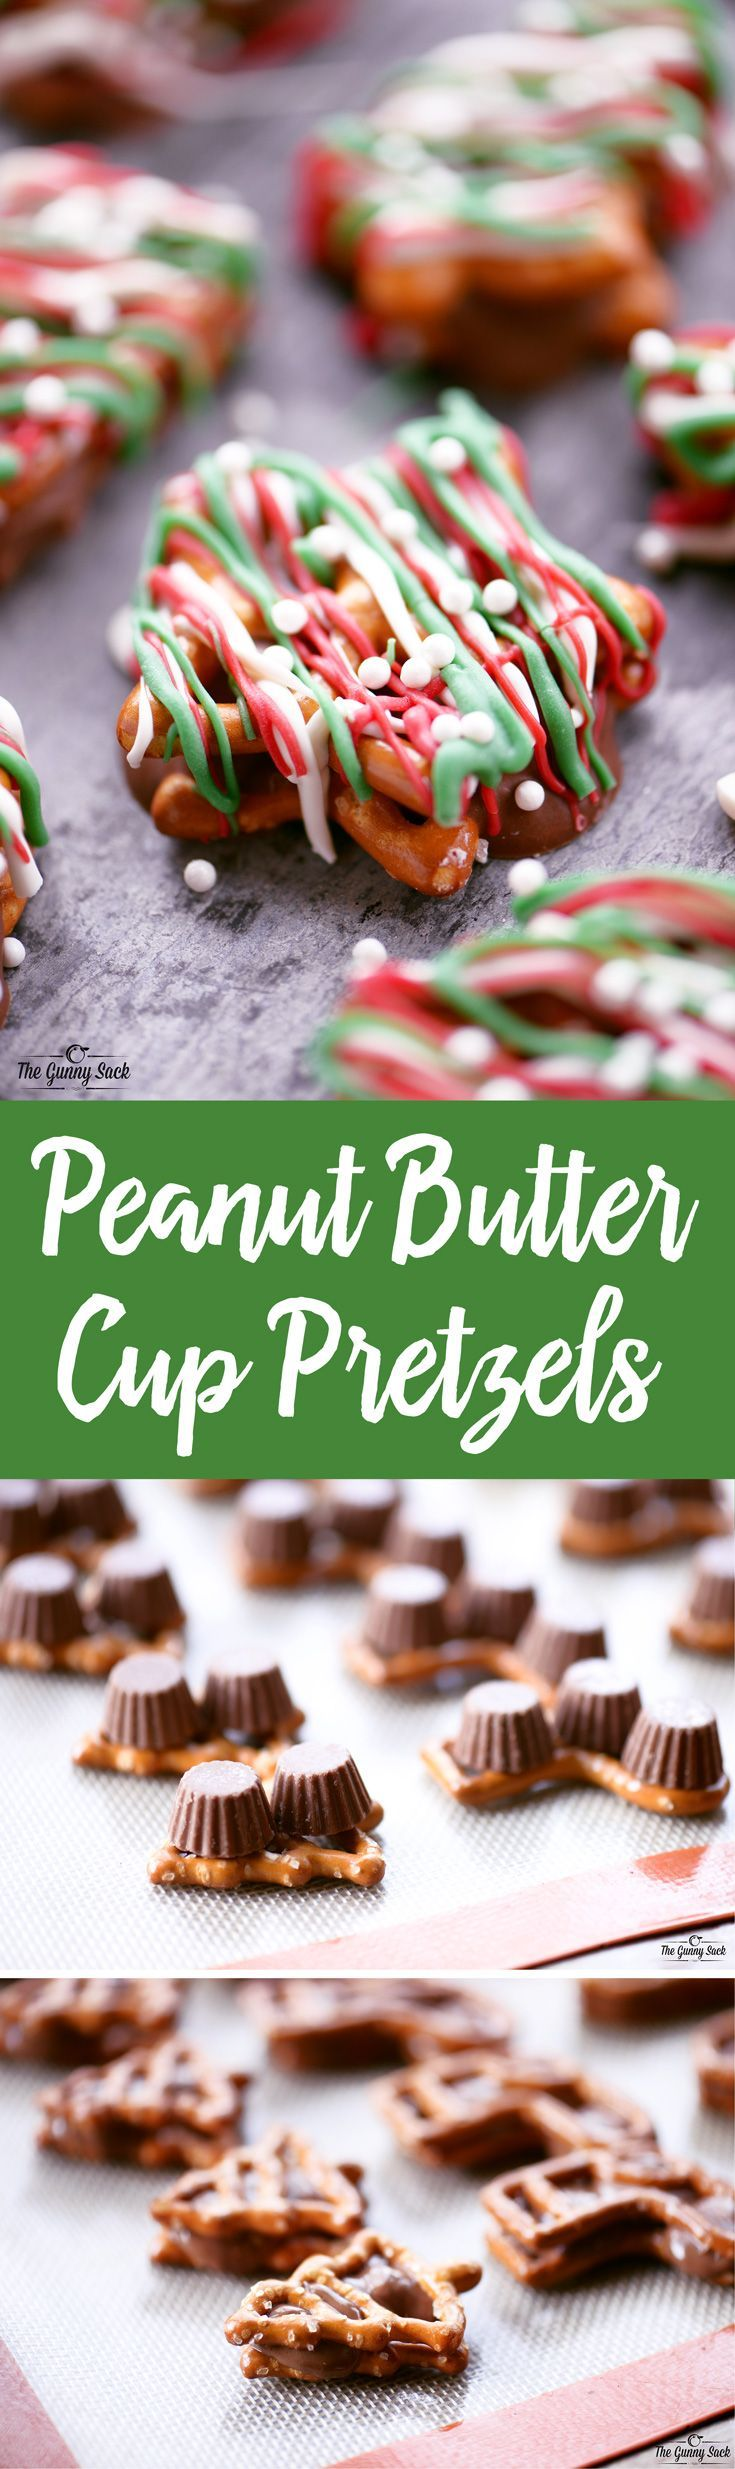 Peanut Butter Cup Pretzels are so easy to make for Christmas and they look festive too! Try them for your next holiday party!